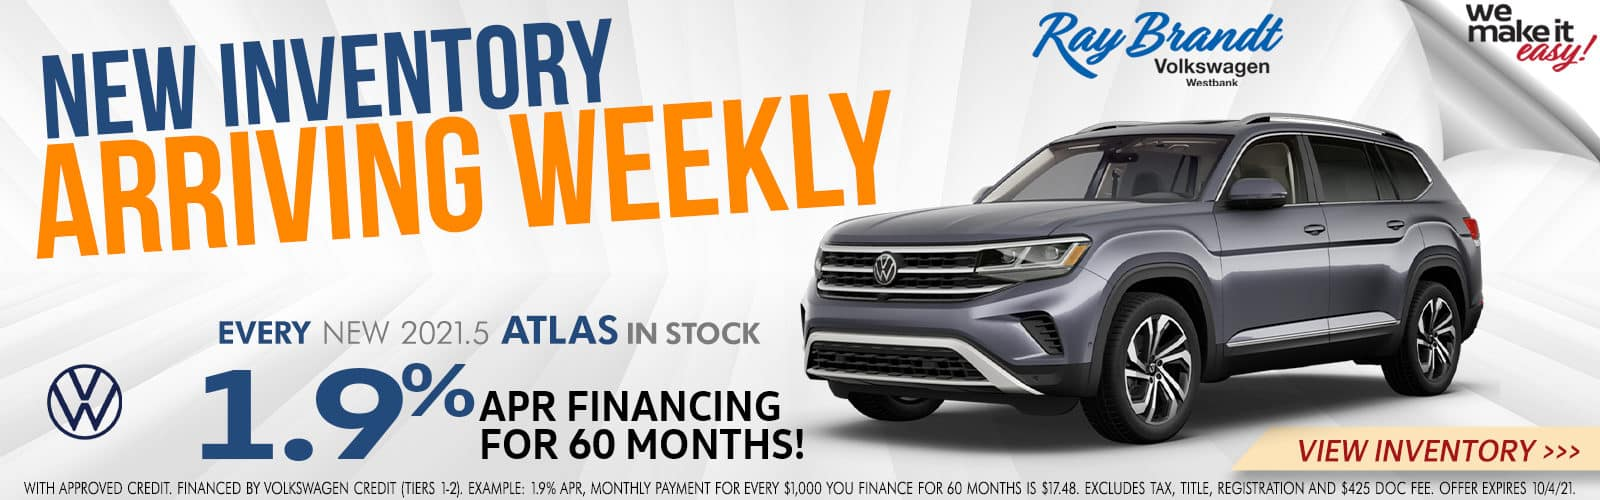 New Inventory Arriving Weekly at Ray Brandt VW